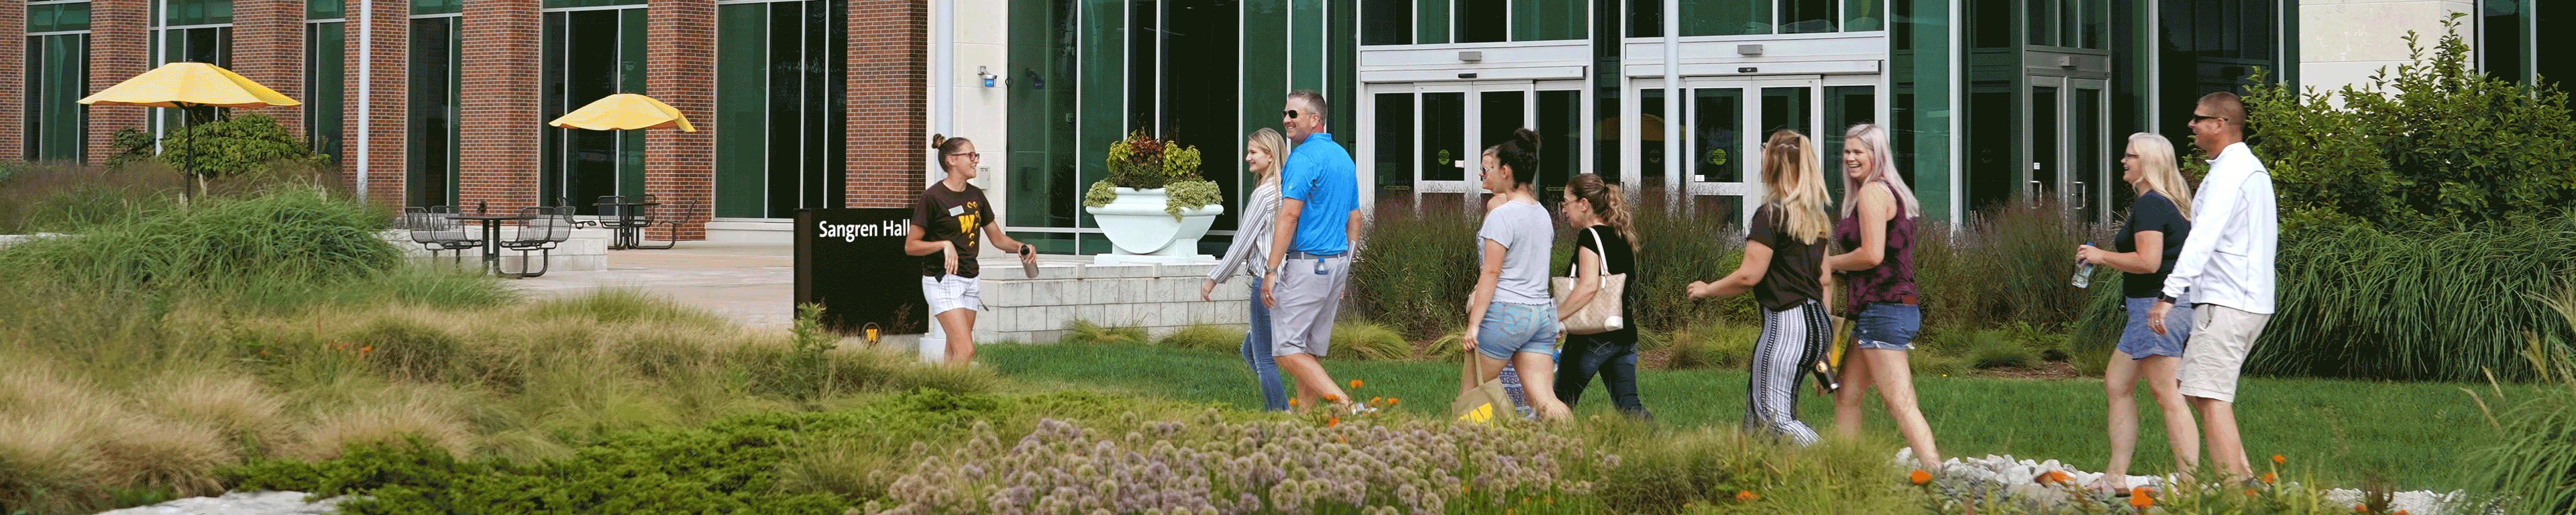 Page banner: New families on a walking tour of WMU campus